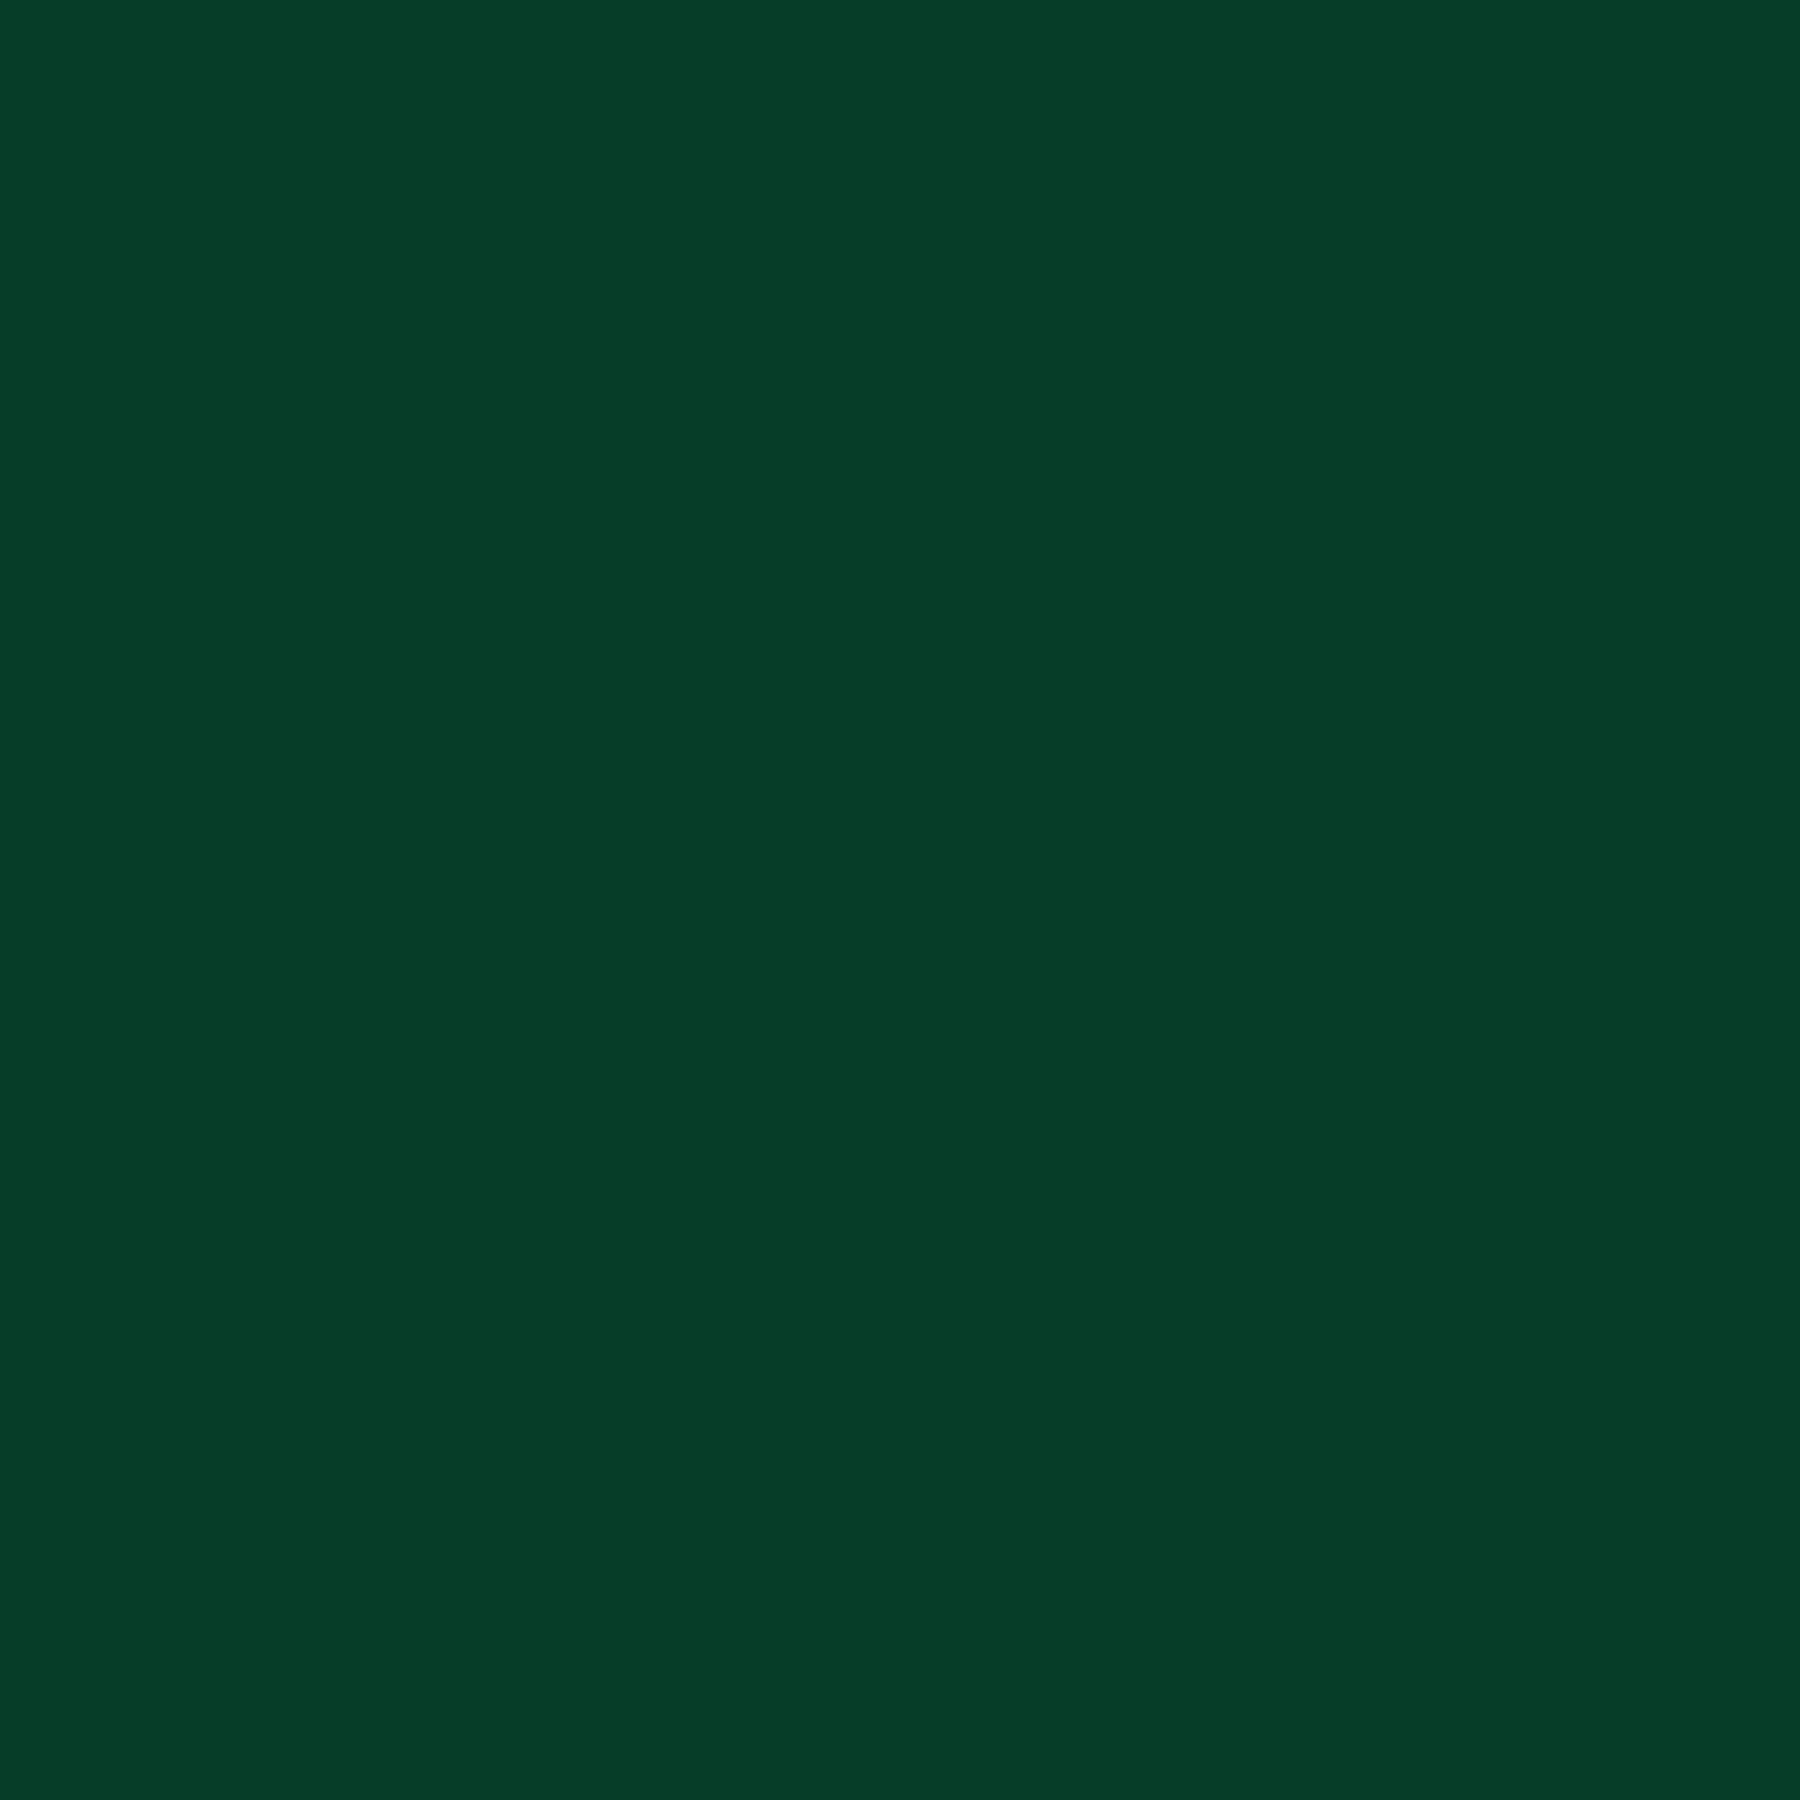 Dark Green - Oracal 651